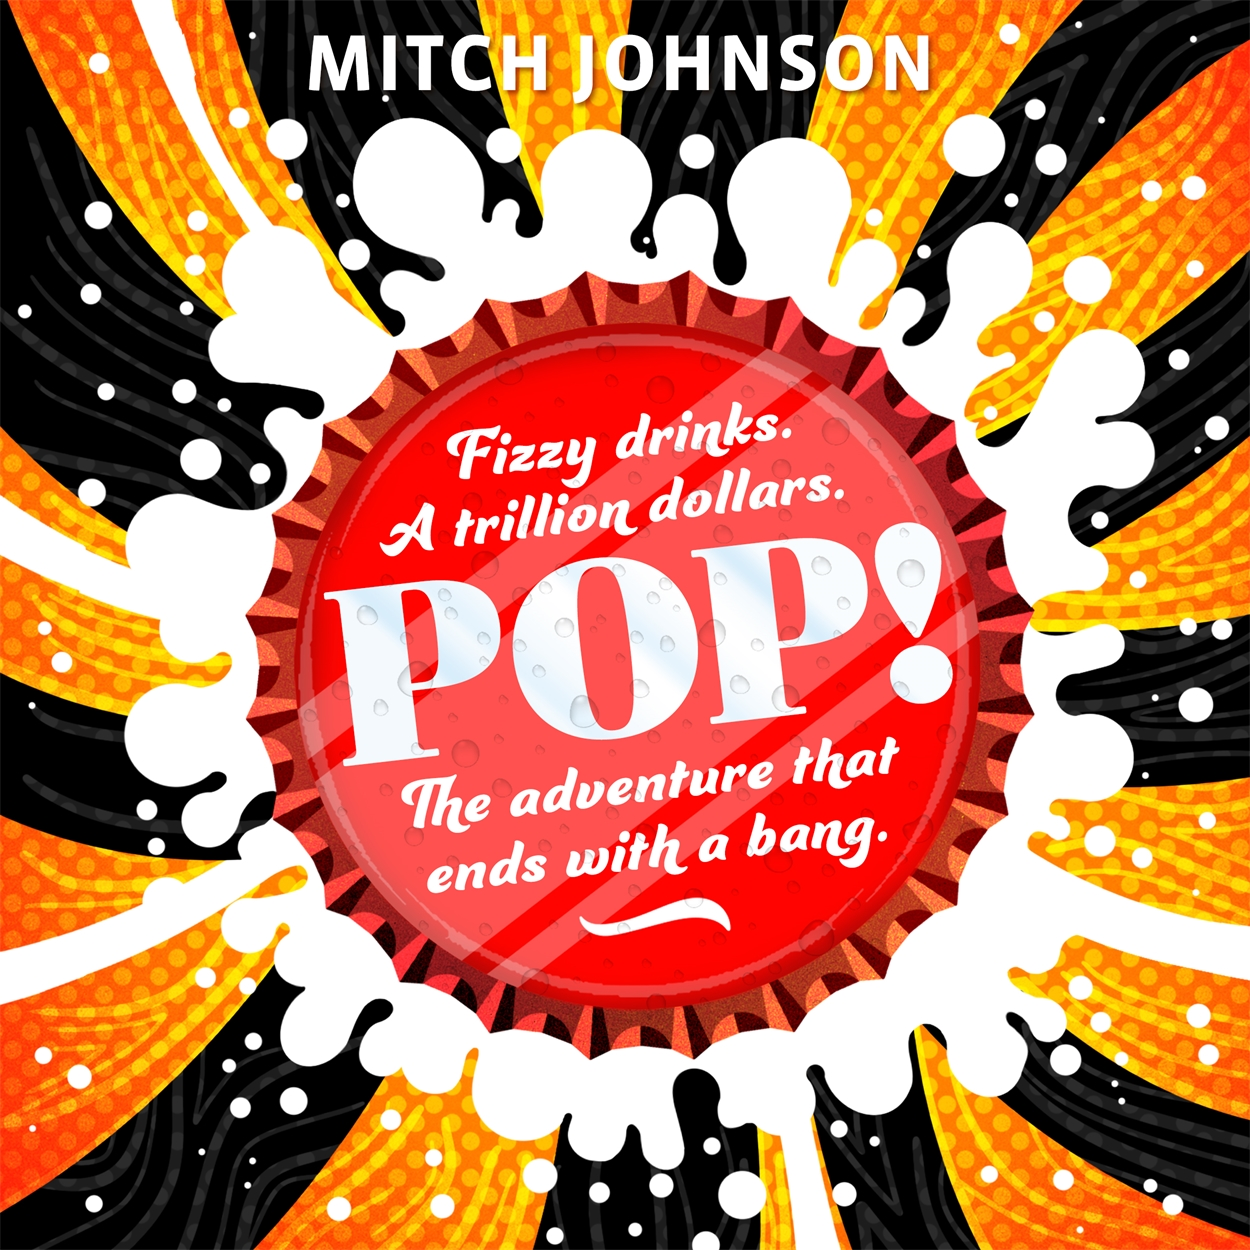 Pop! by Mitch Johnson | Hachette UK